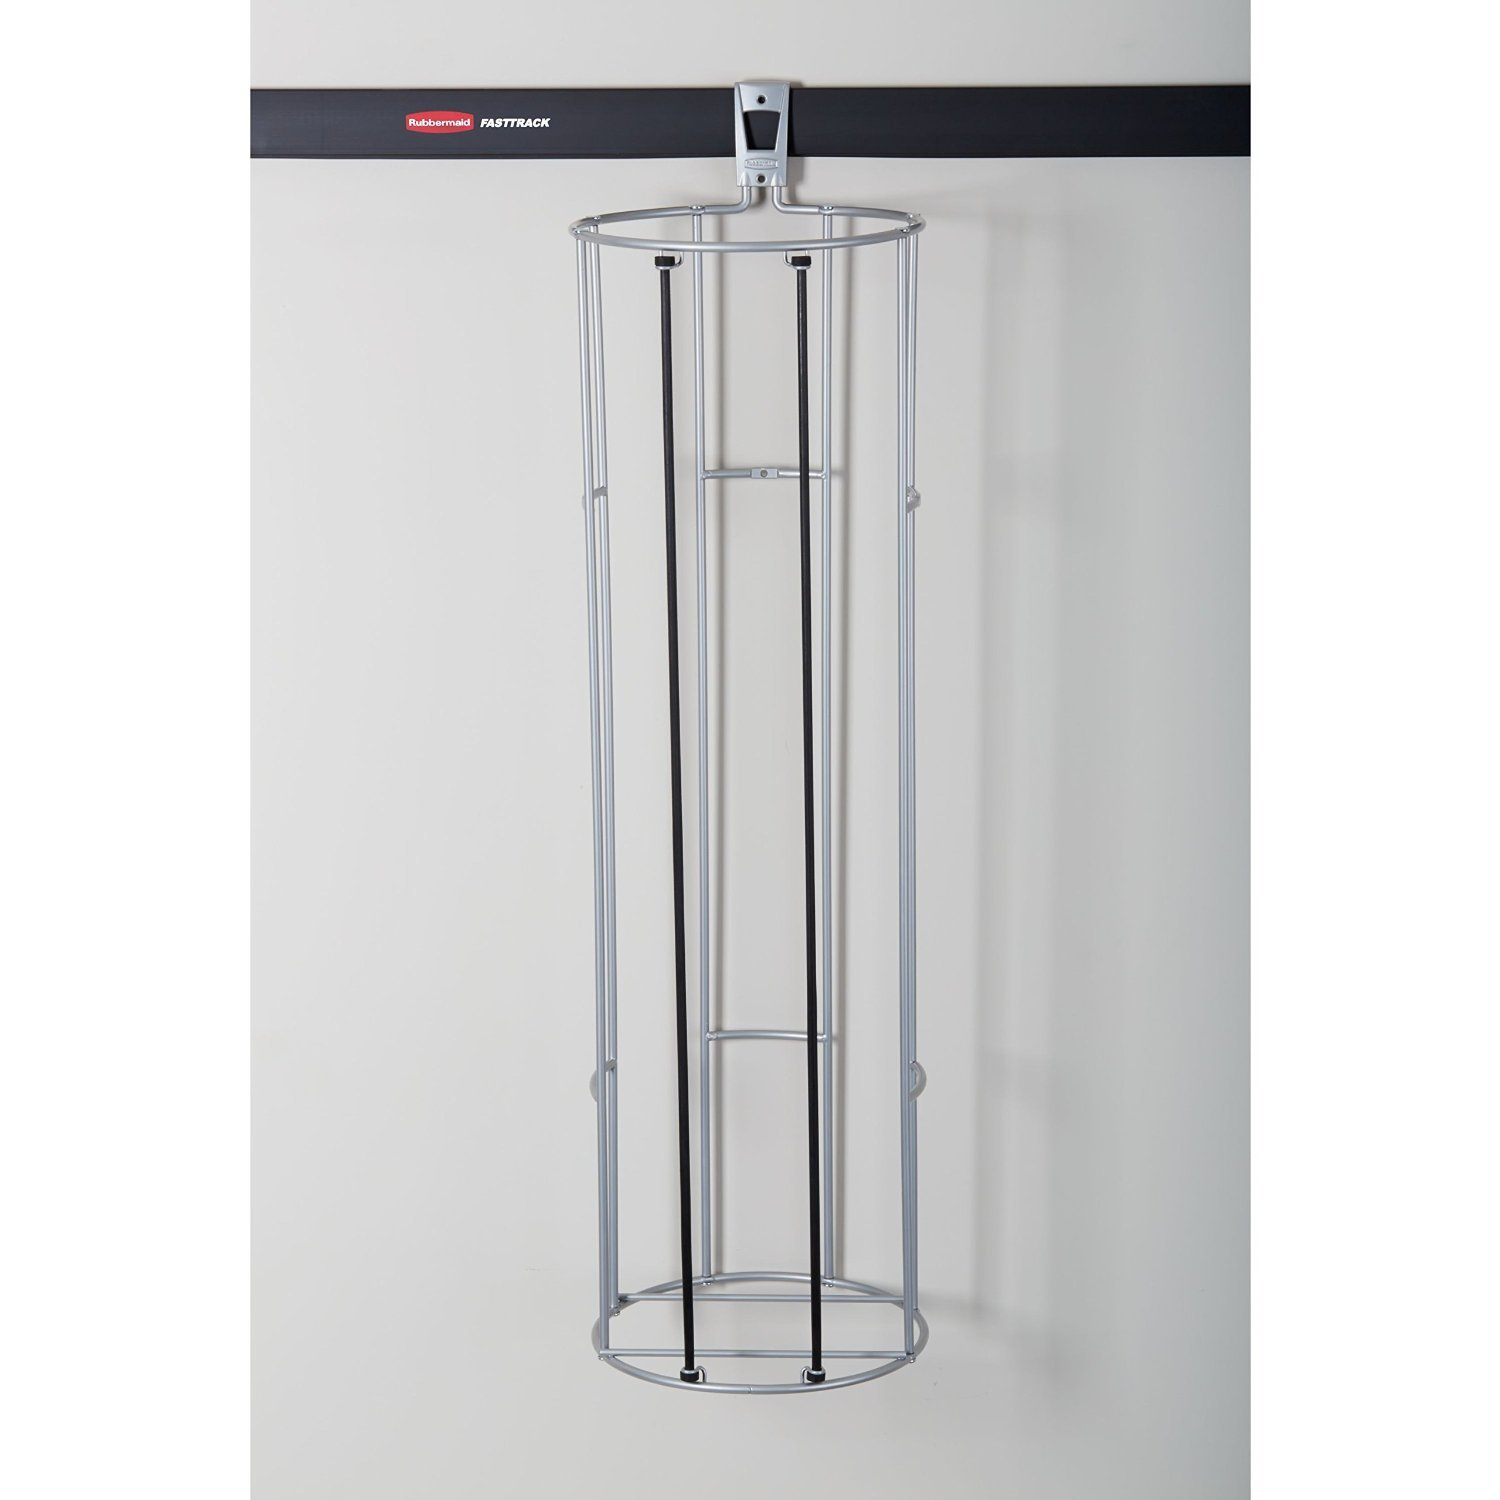 Galleon Rubbermaid Fasttrack Vertical Ball Rack 1784462